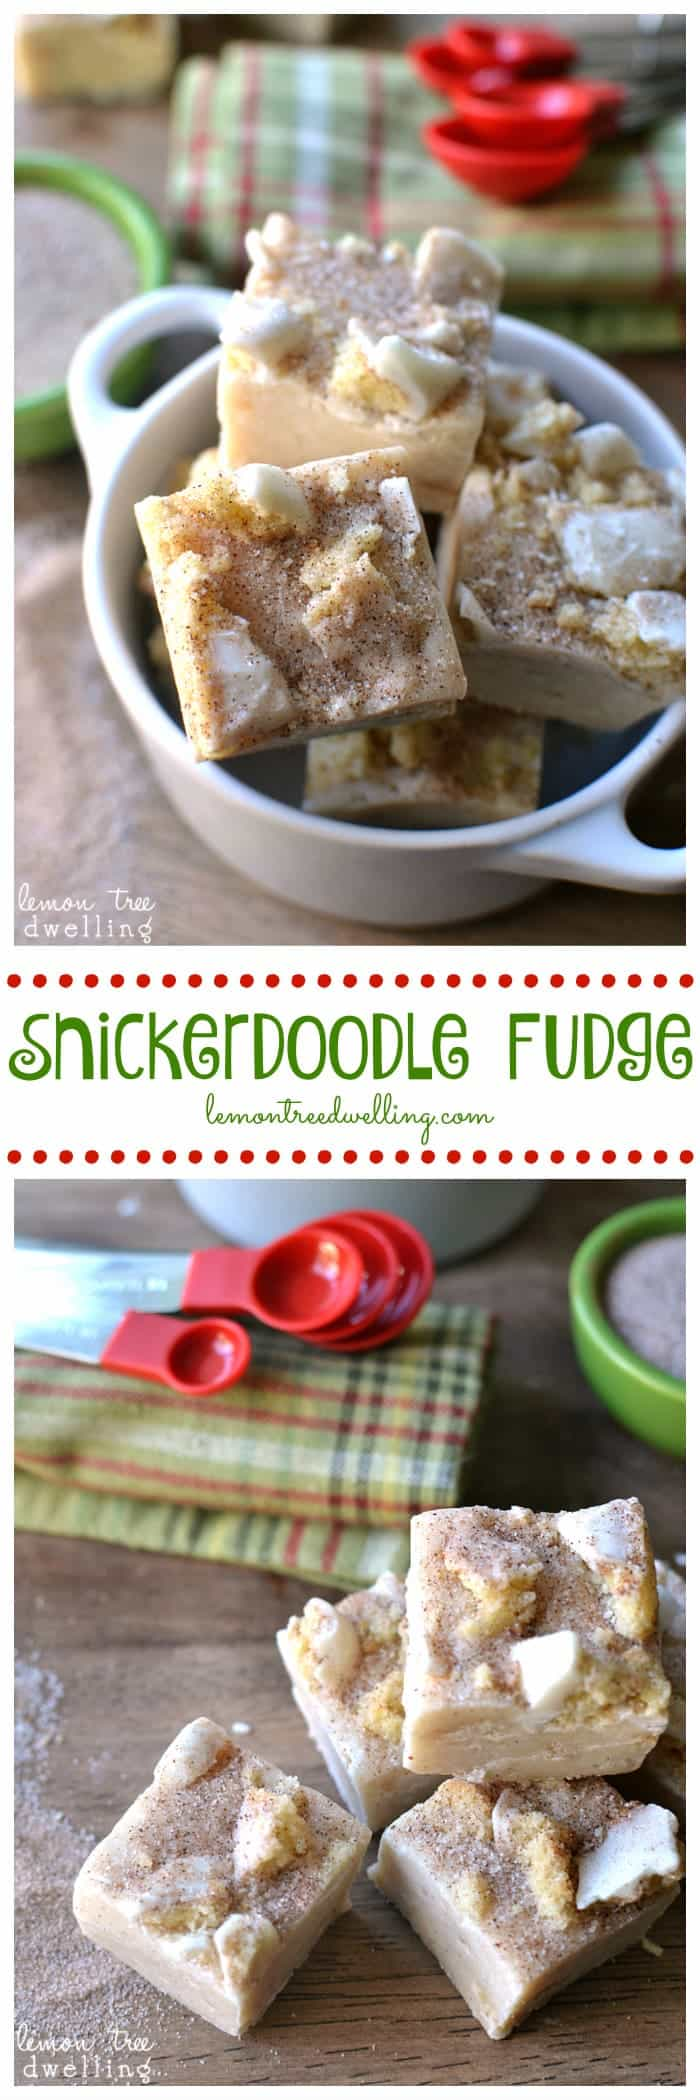 Snickerdoodle Fudge that tastes just like the cookies!